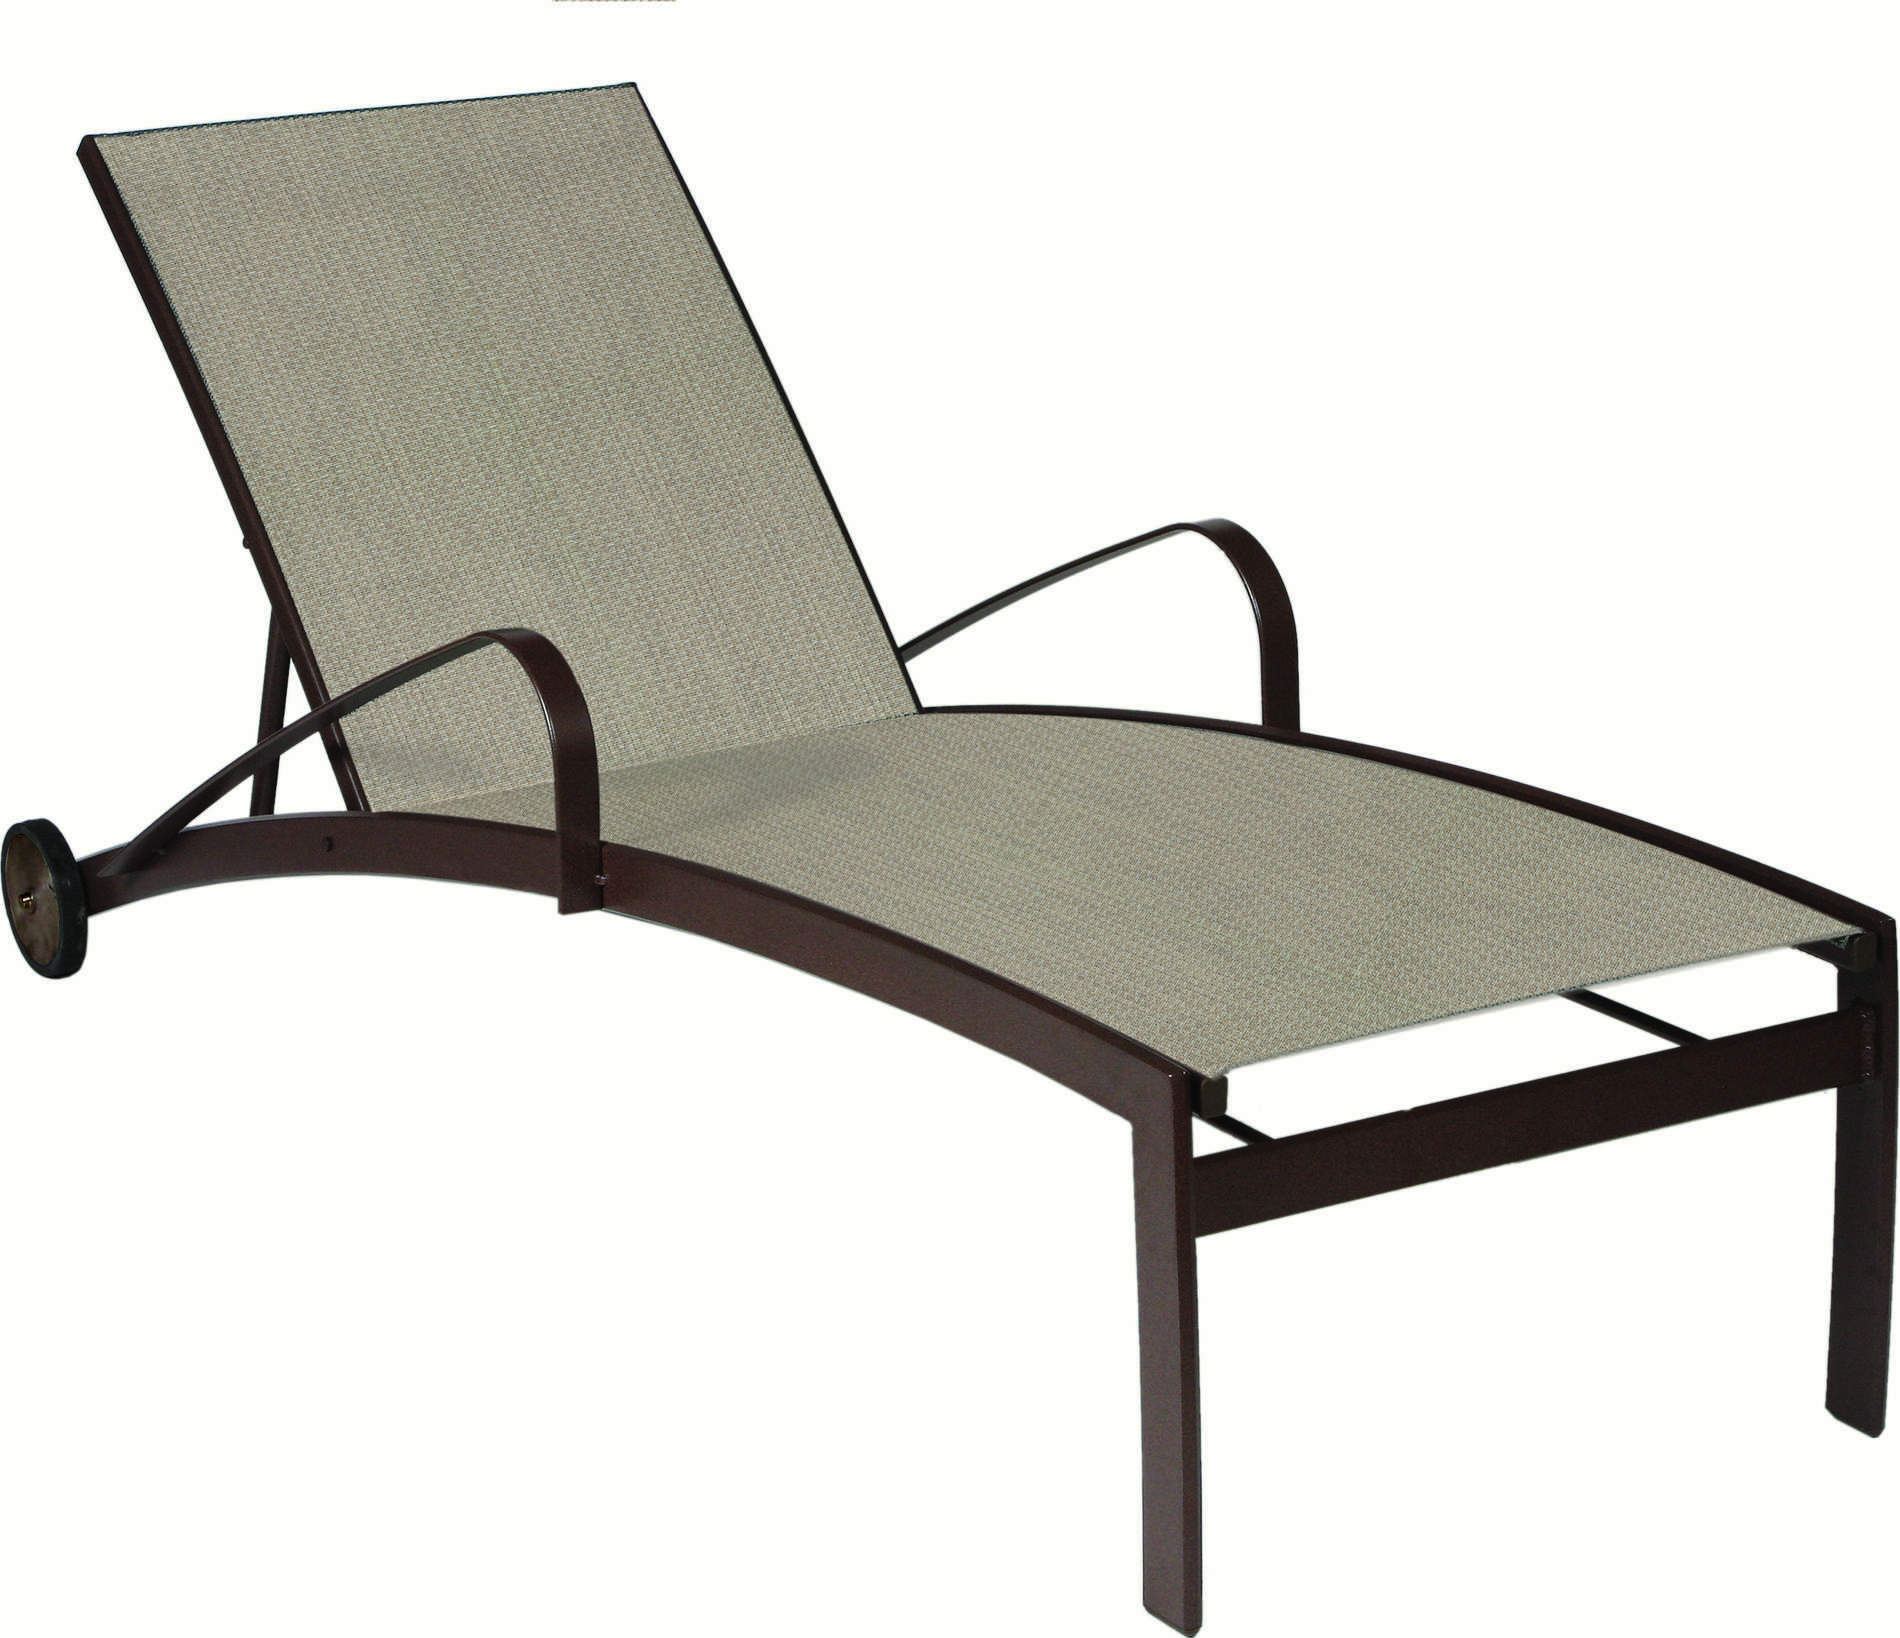 Suncoast vision sling cast aluminum chaise lounge with for Chaise aluminium